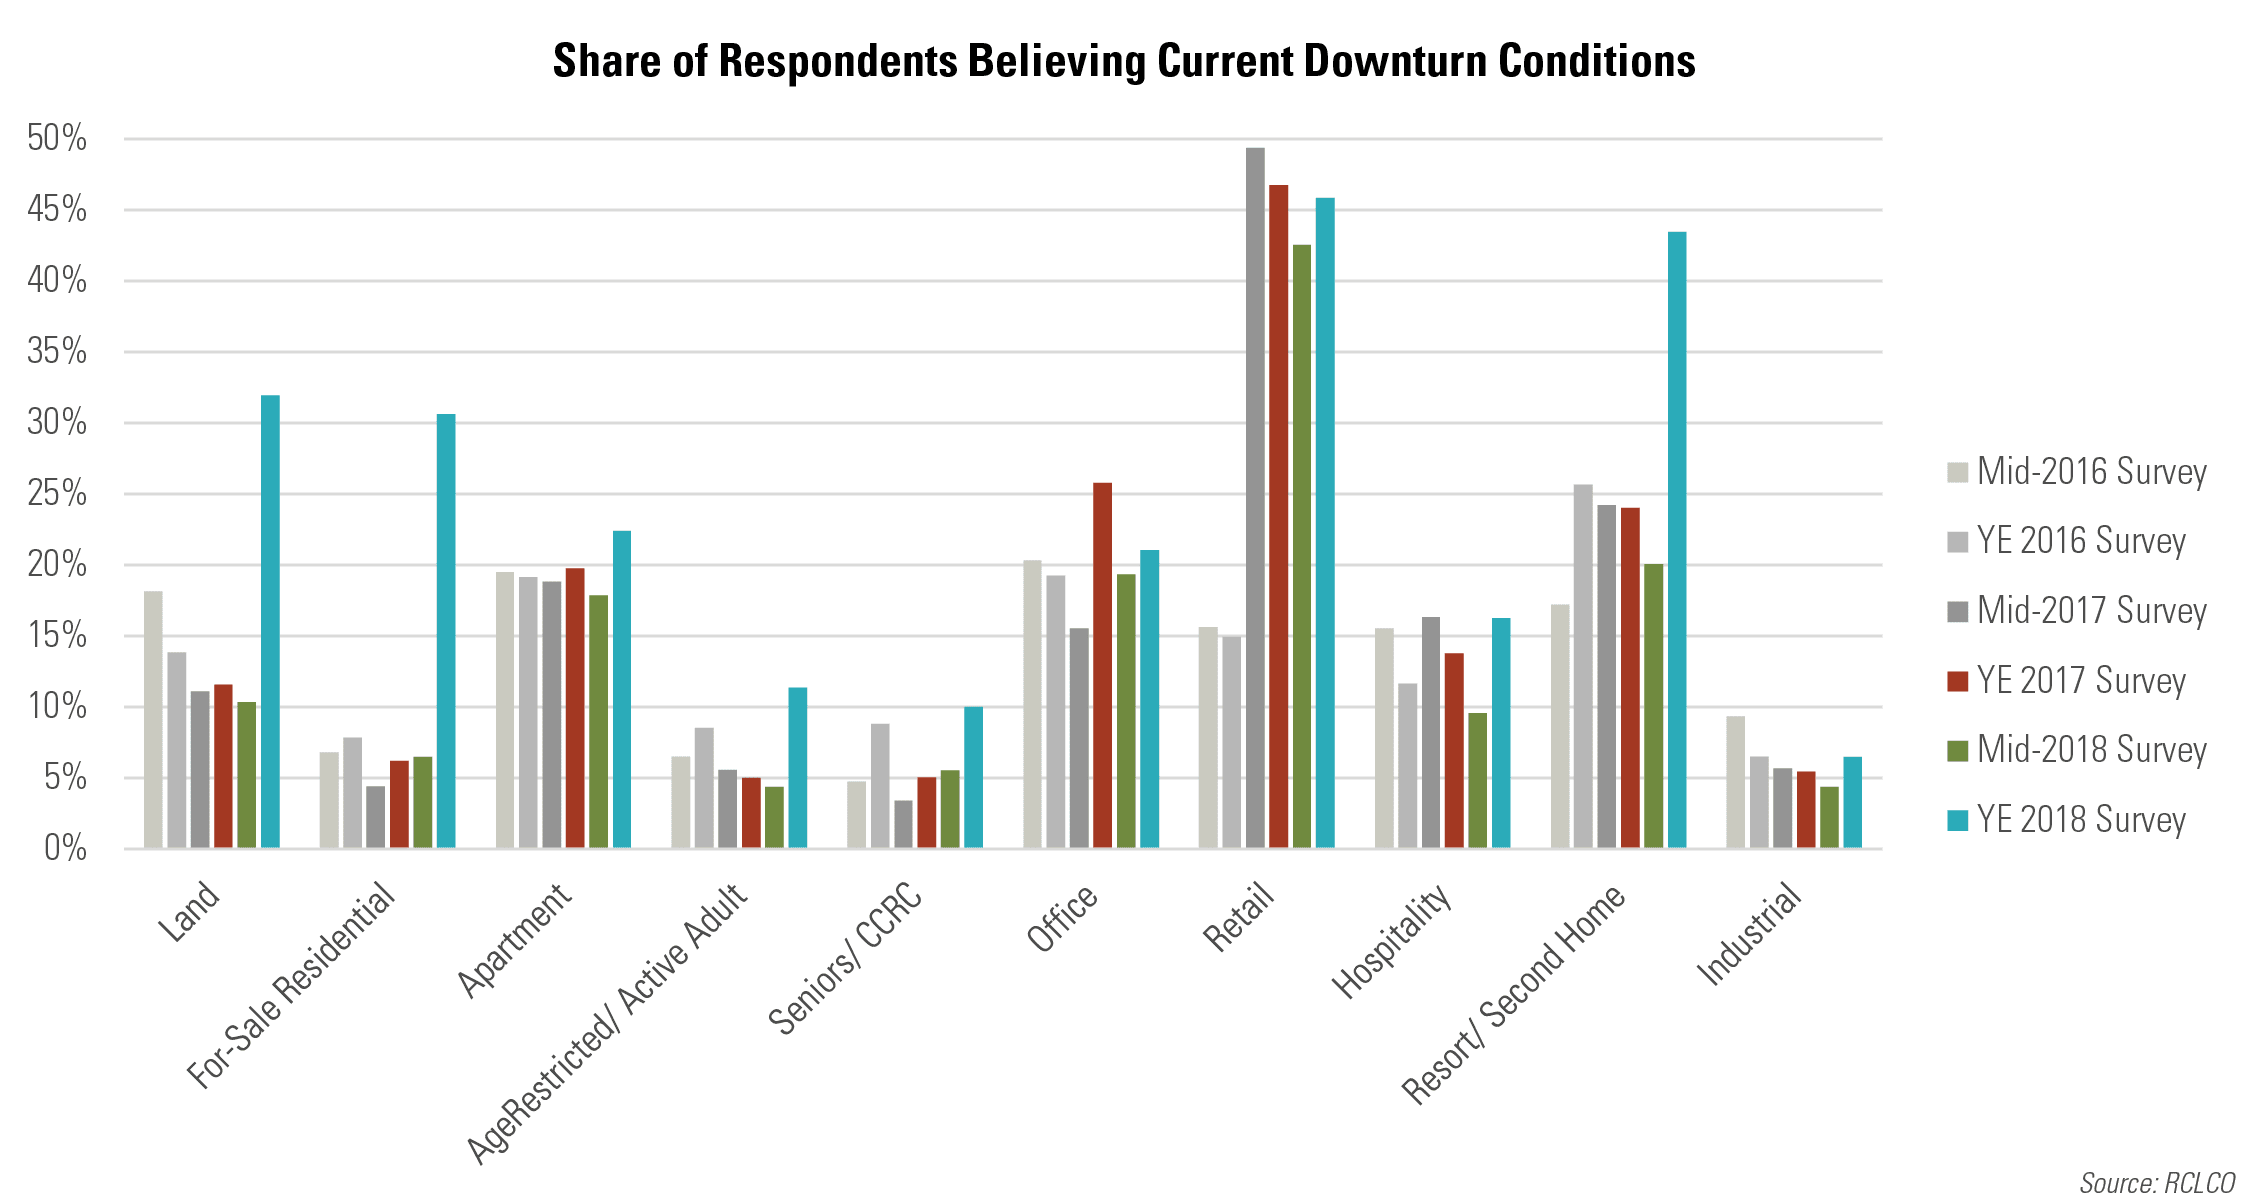 Share of Respondents Believing Current Downturn Conditions